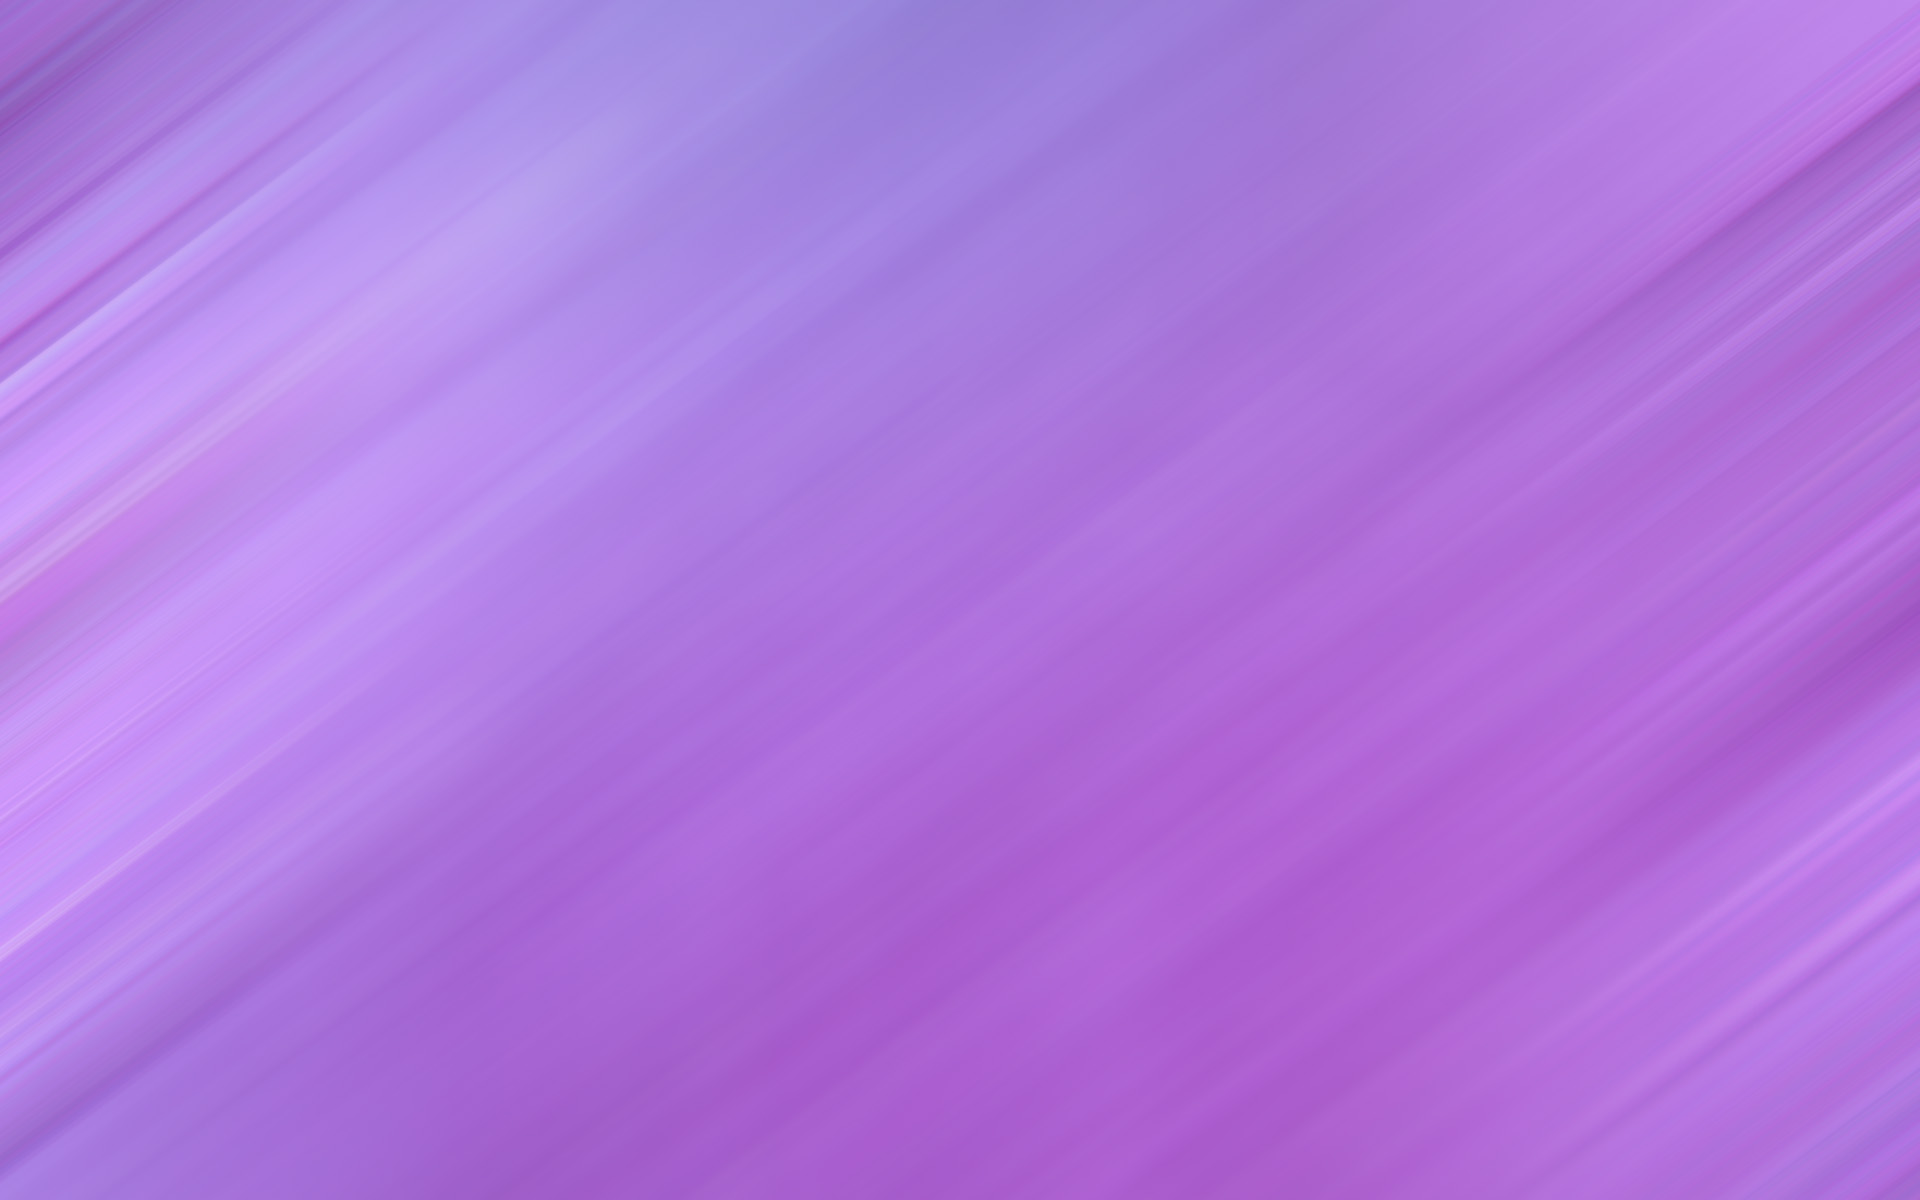 Purple wallpaper 46455 1920x1200 px for Wallpaper styles and colors